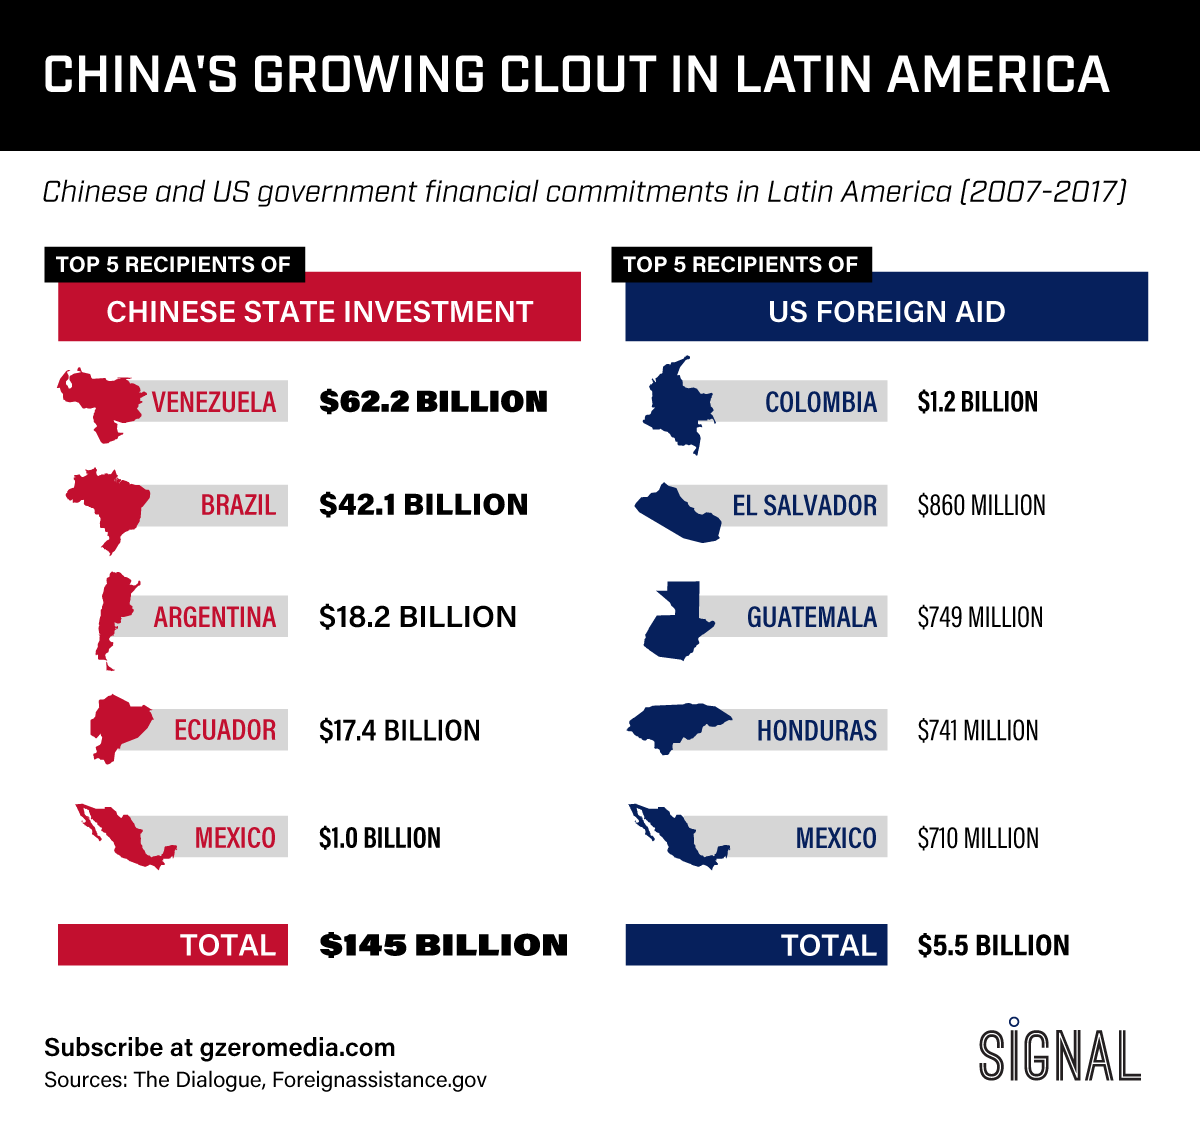 Graphic Truth: China's Growing Clout In Latin America